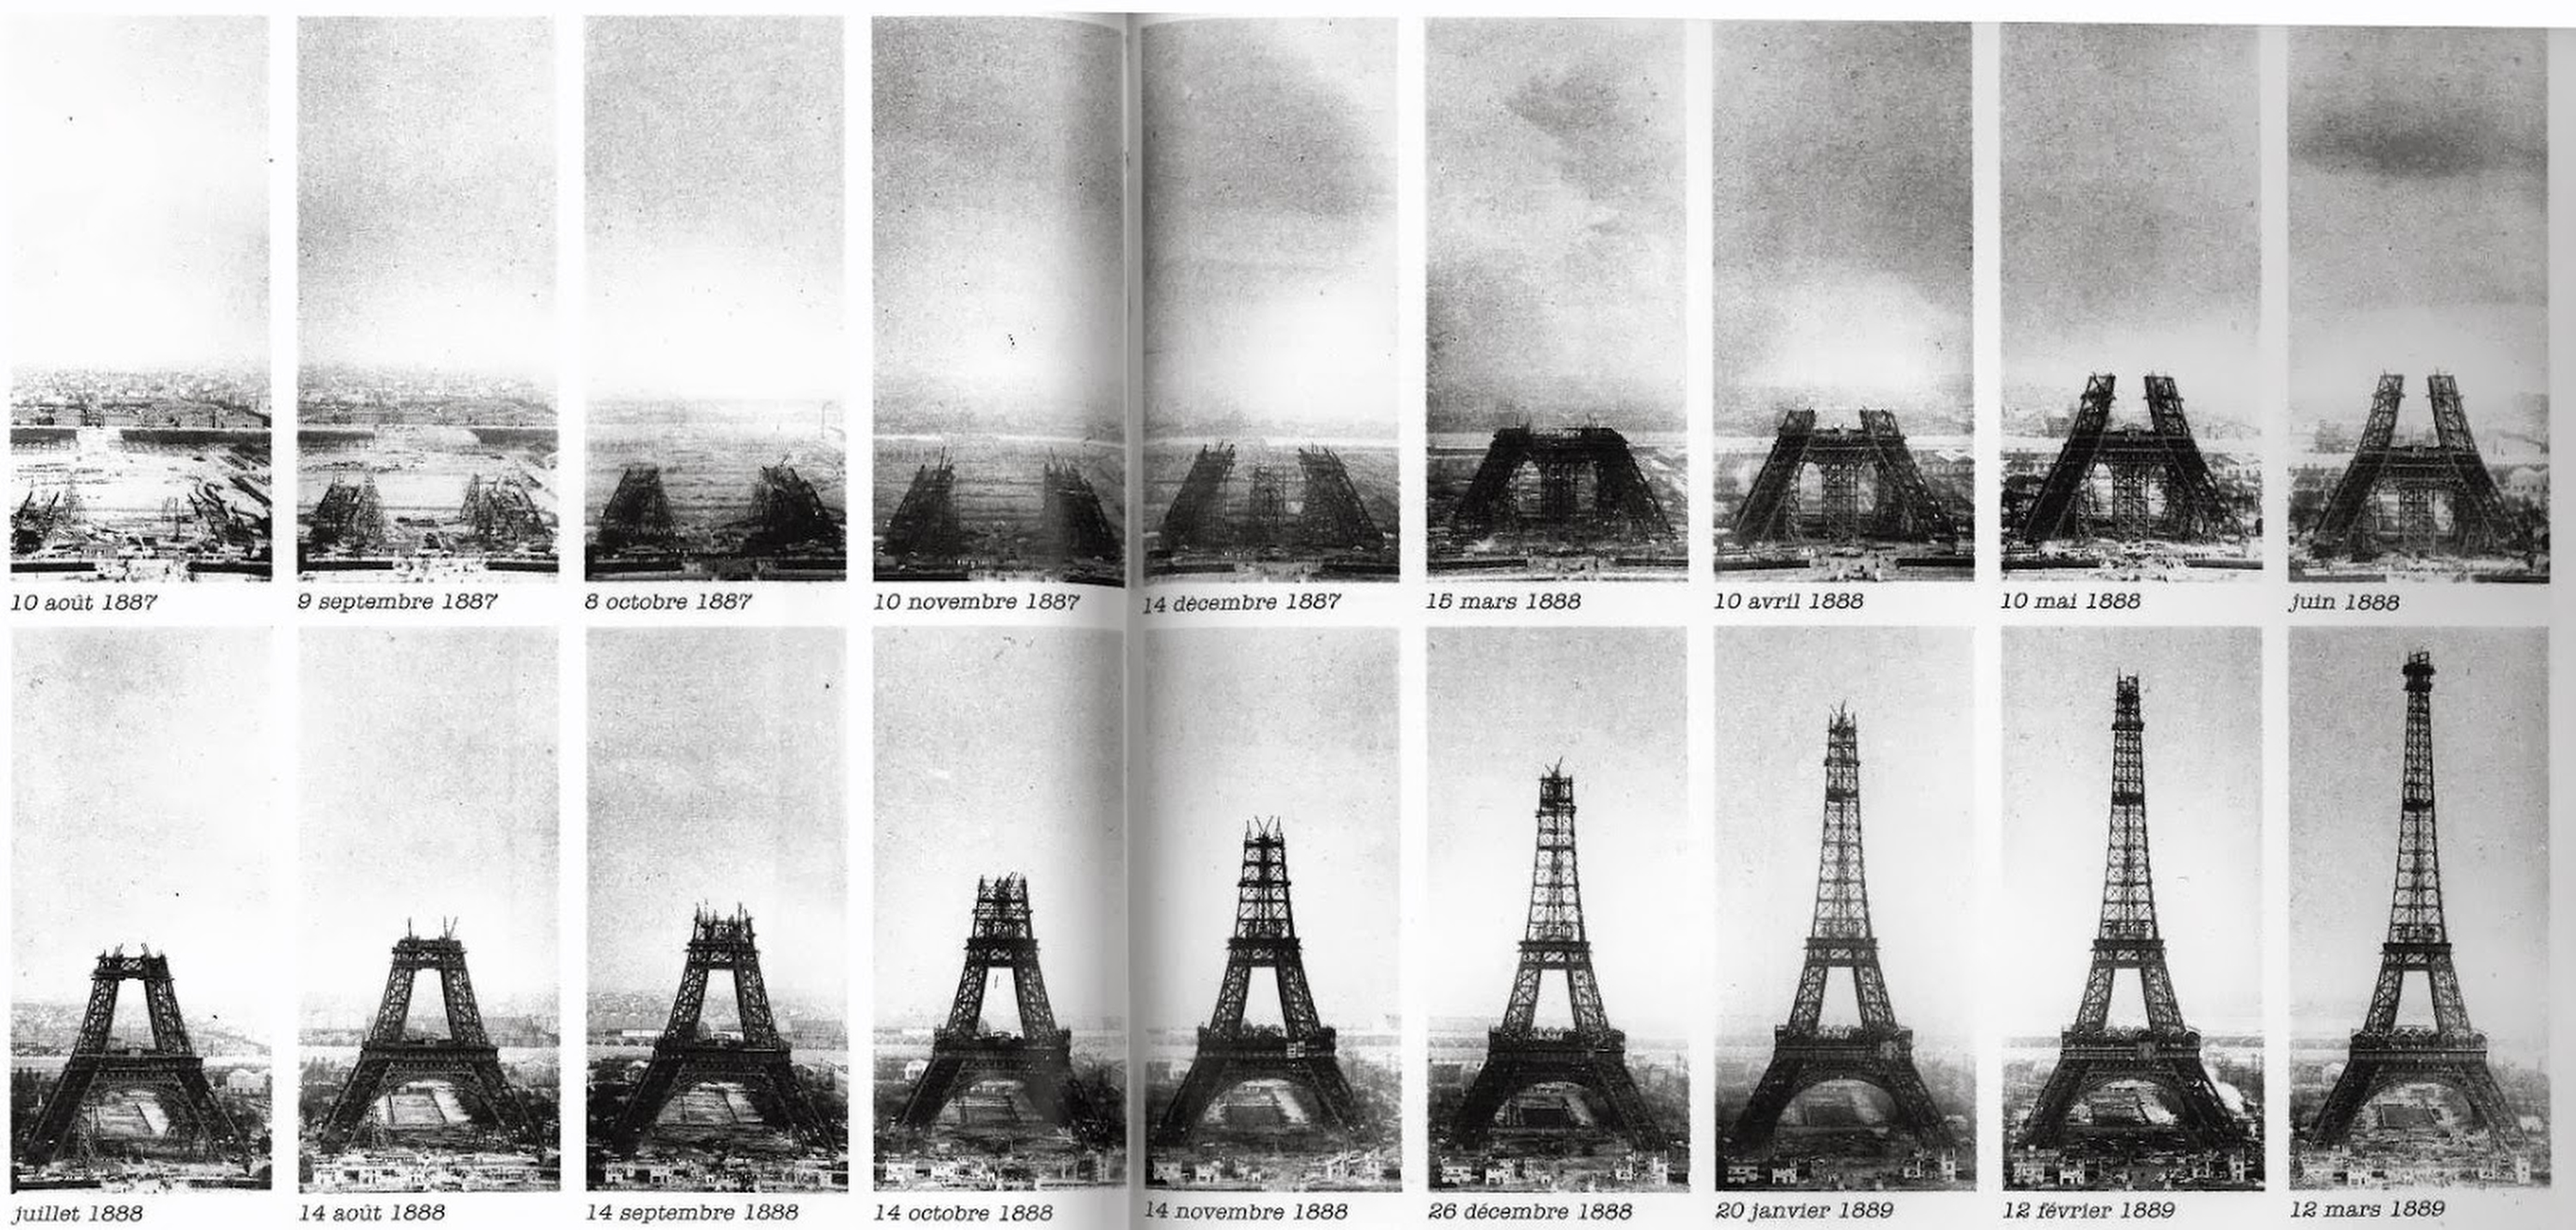 eiffelTowerConstruction